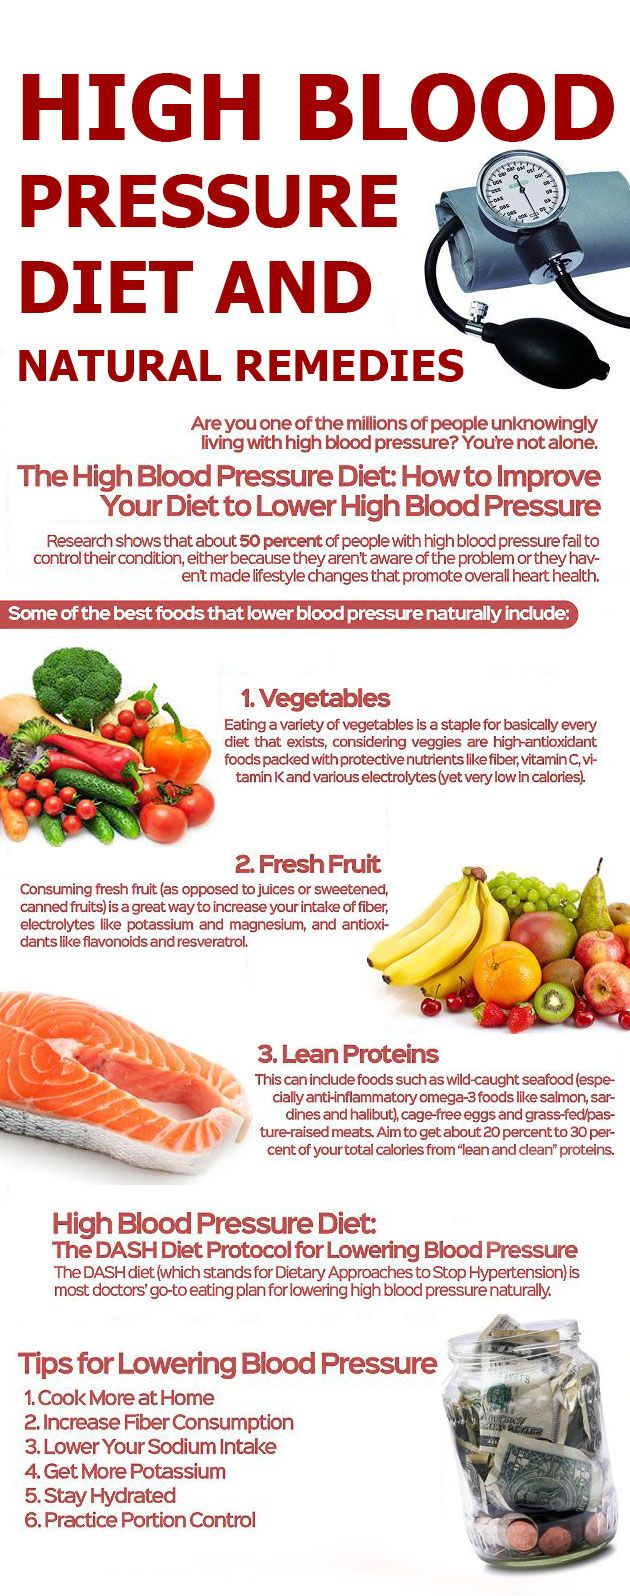 What Are The Best Natural Foods To Lower Blood Pressure